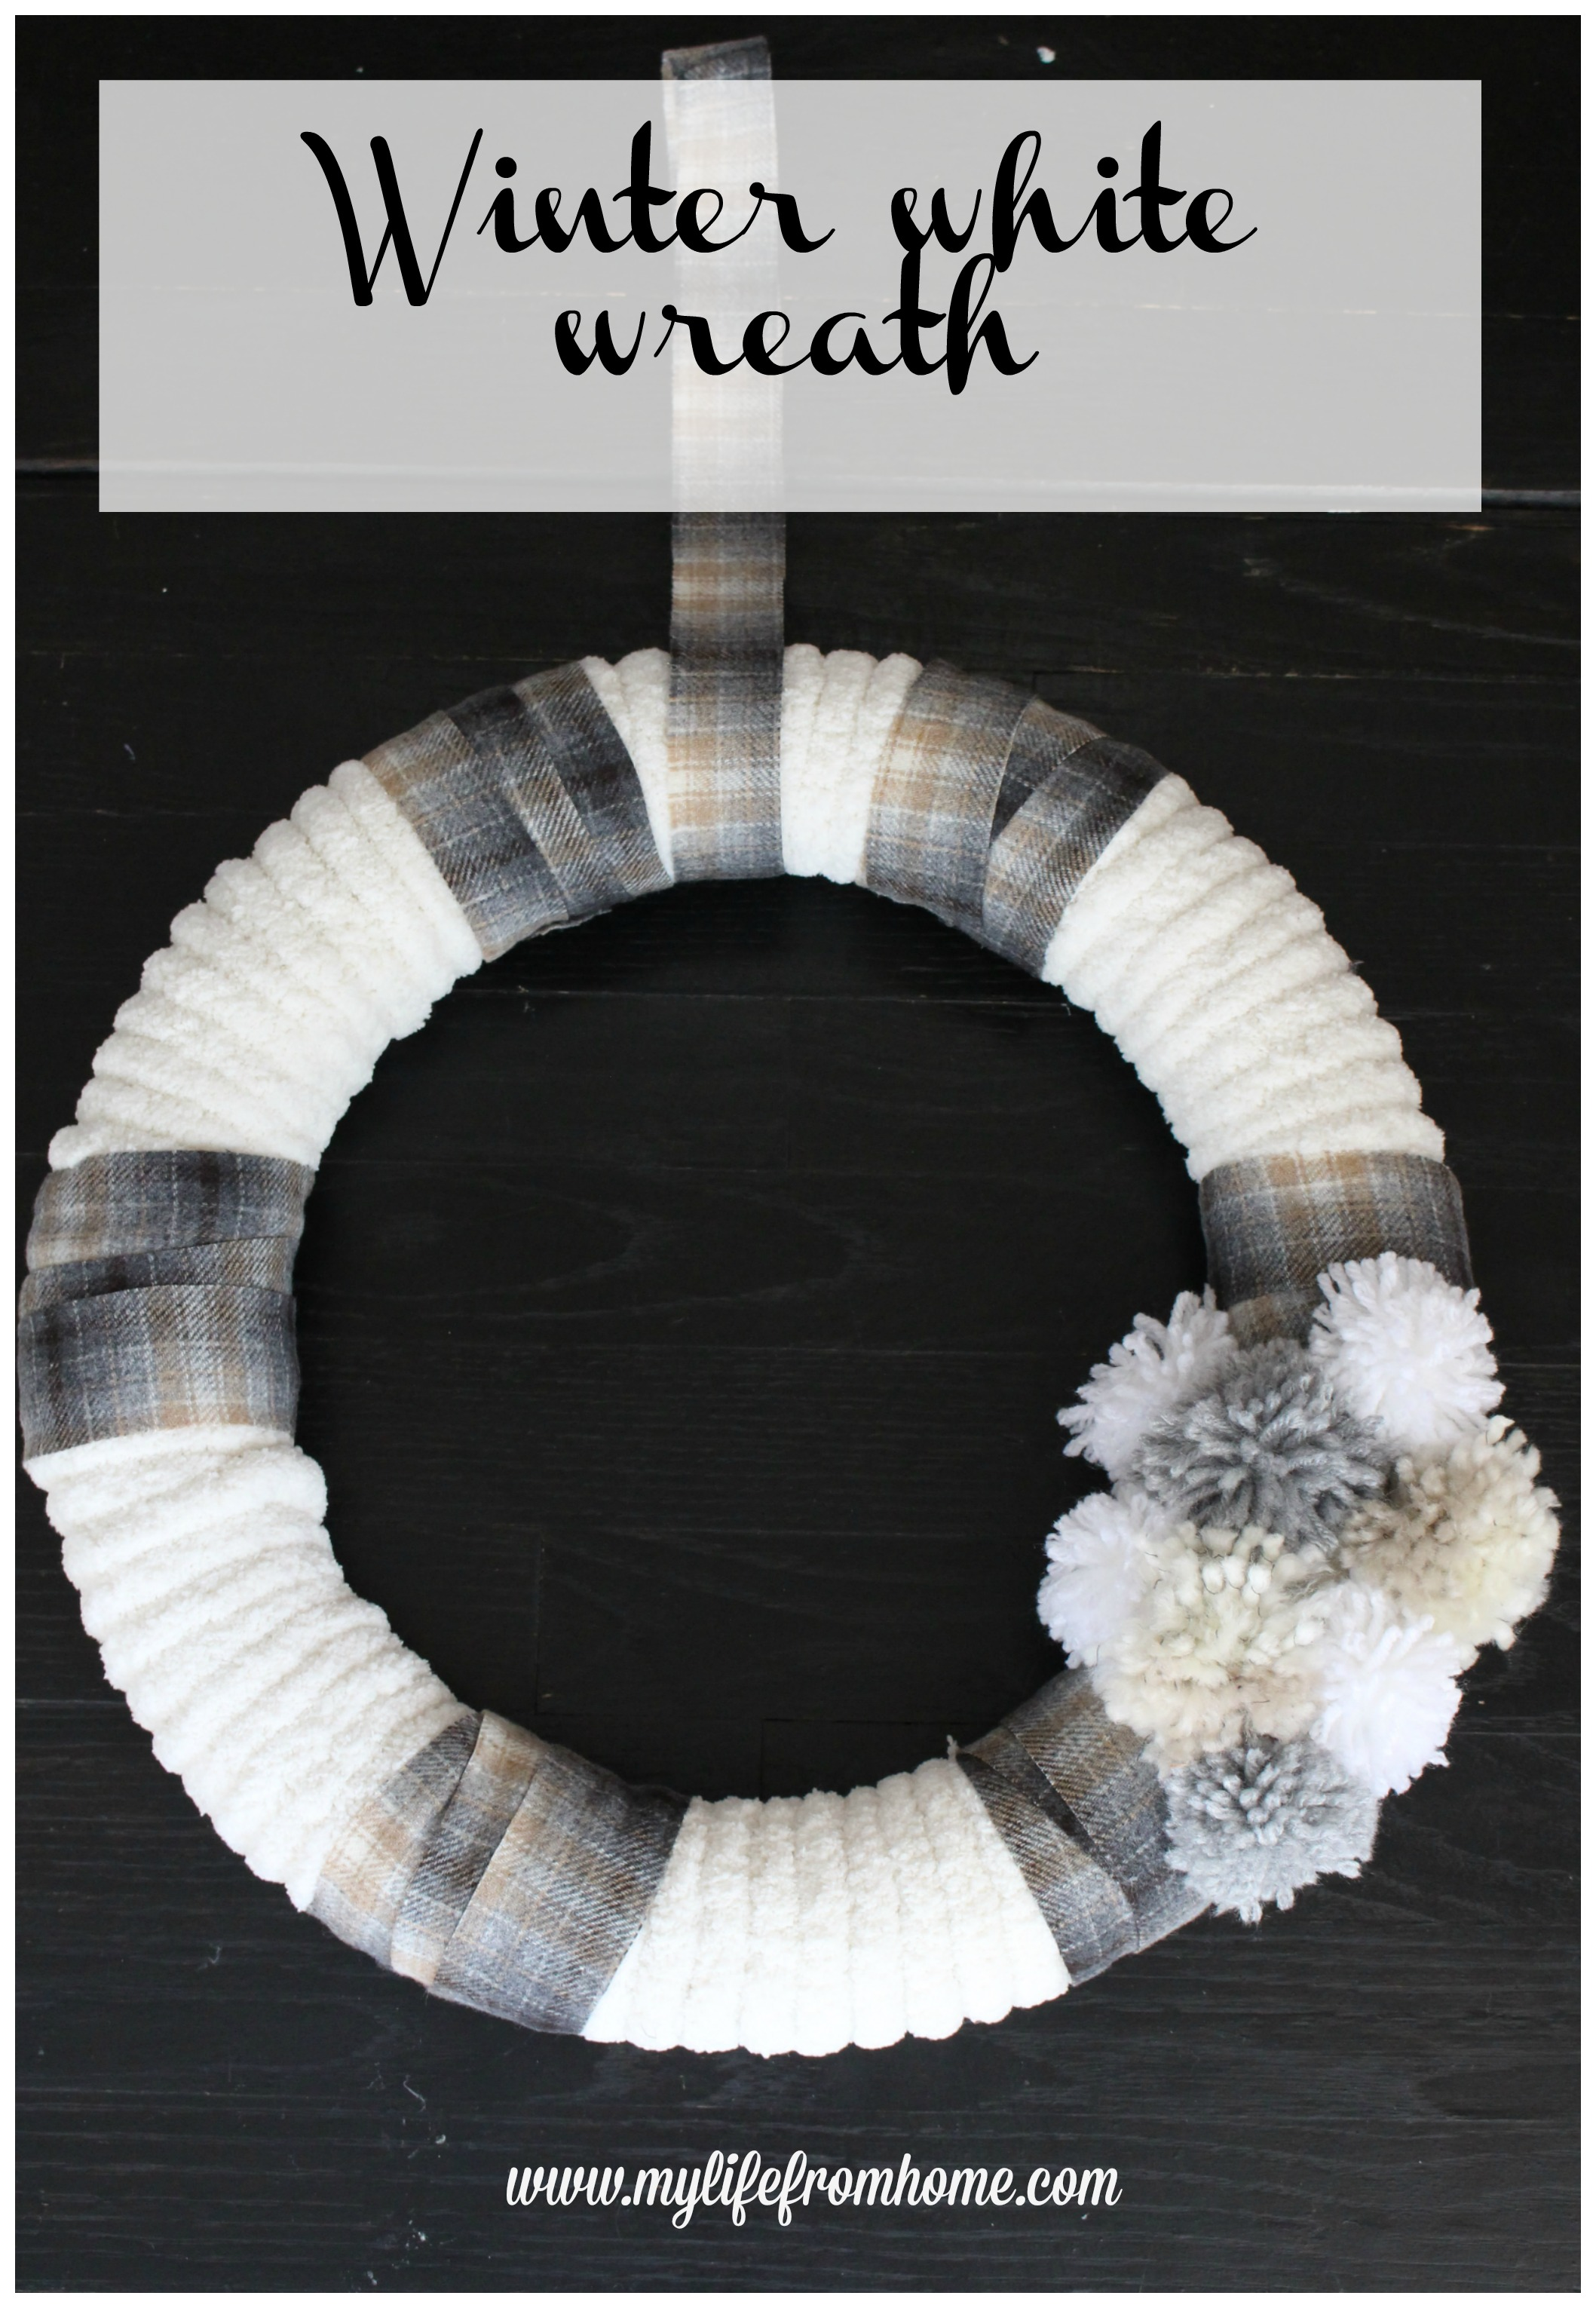 winter-white-wreath-diy-wreath-neutral-wreath-winter-wreath-crafts-winter-decor-pompom-wreath-neutral-decor-wreaths